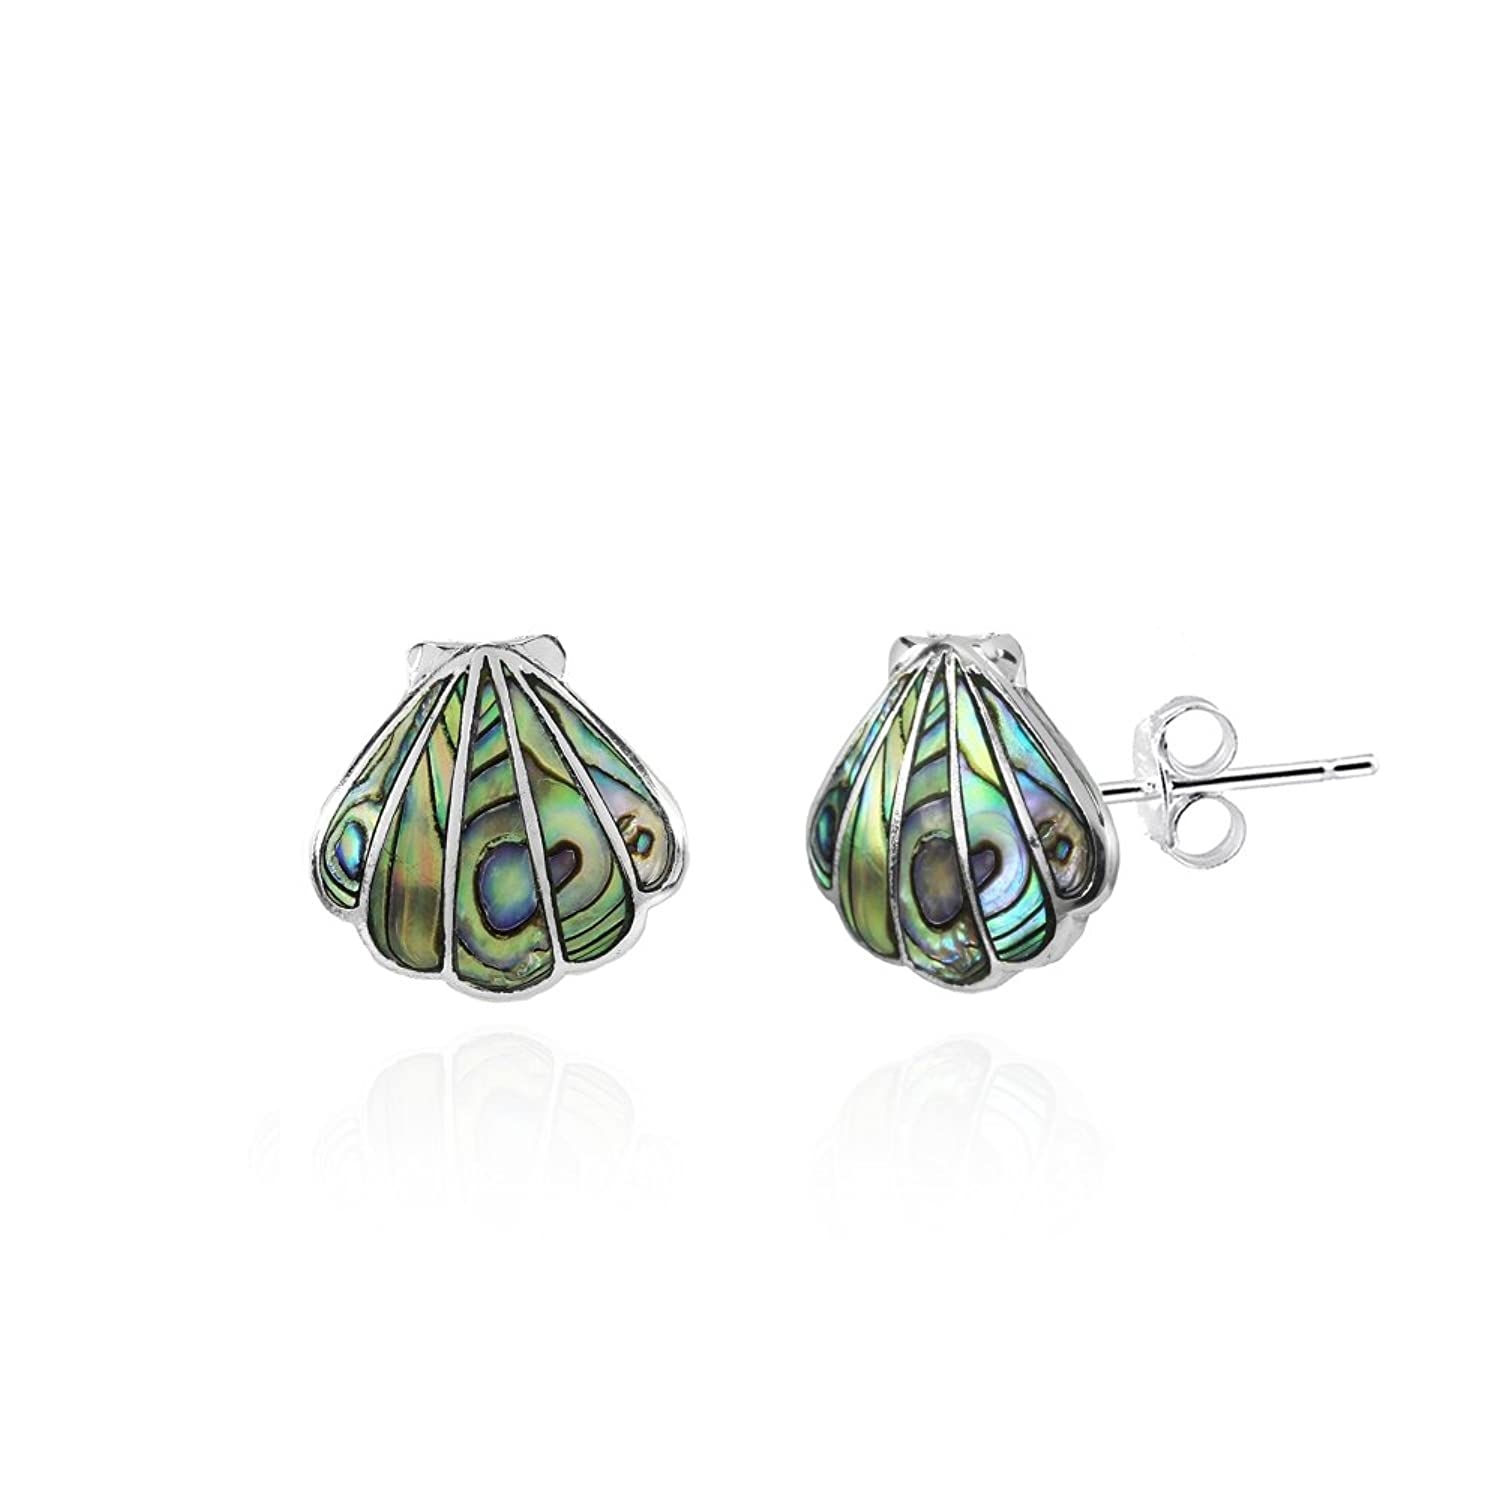 this designed seashell products artisan khun cute oval comes se earrings beautiful in jai trendy piece heart round which and details stud square accents inlaid abalone inlay ha silver stone aeravida